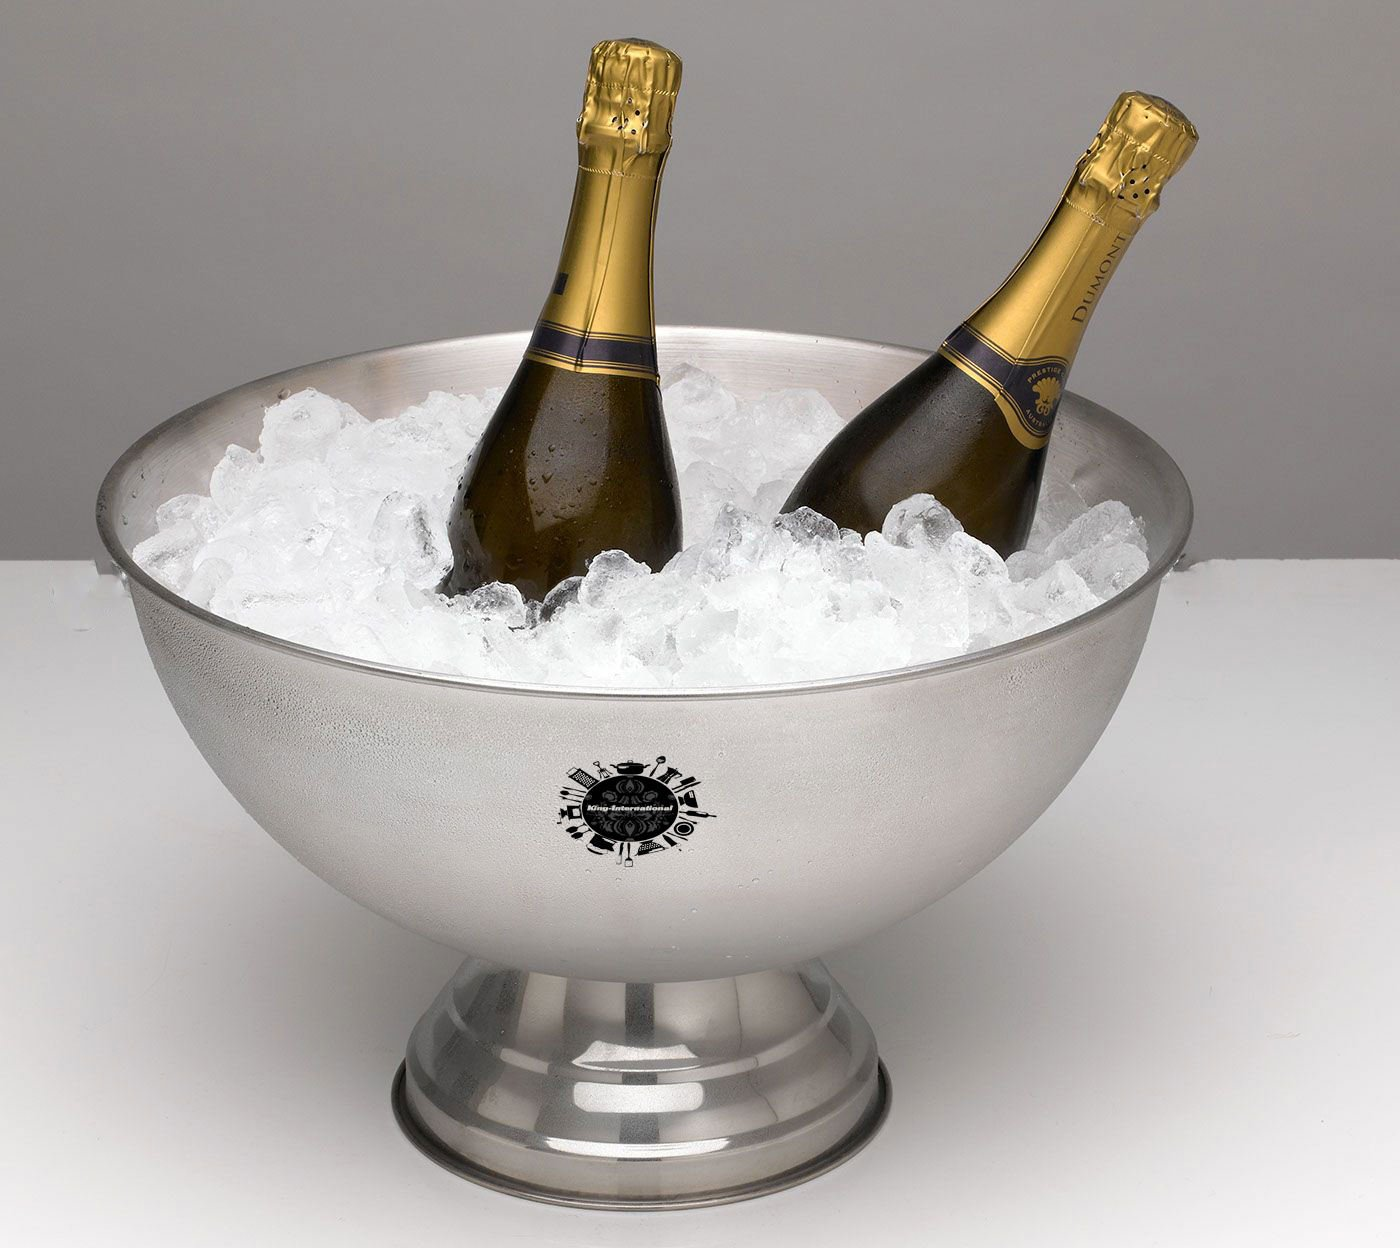 King International Stainless Steel Punch Bowl Wine Chiller | Beverage Chiller | Ice Tub - 8 L